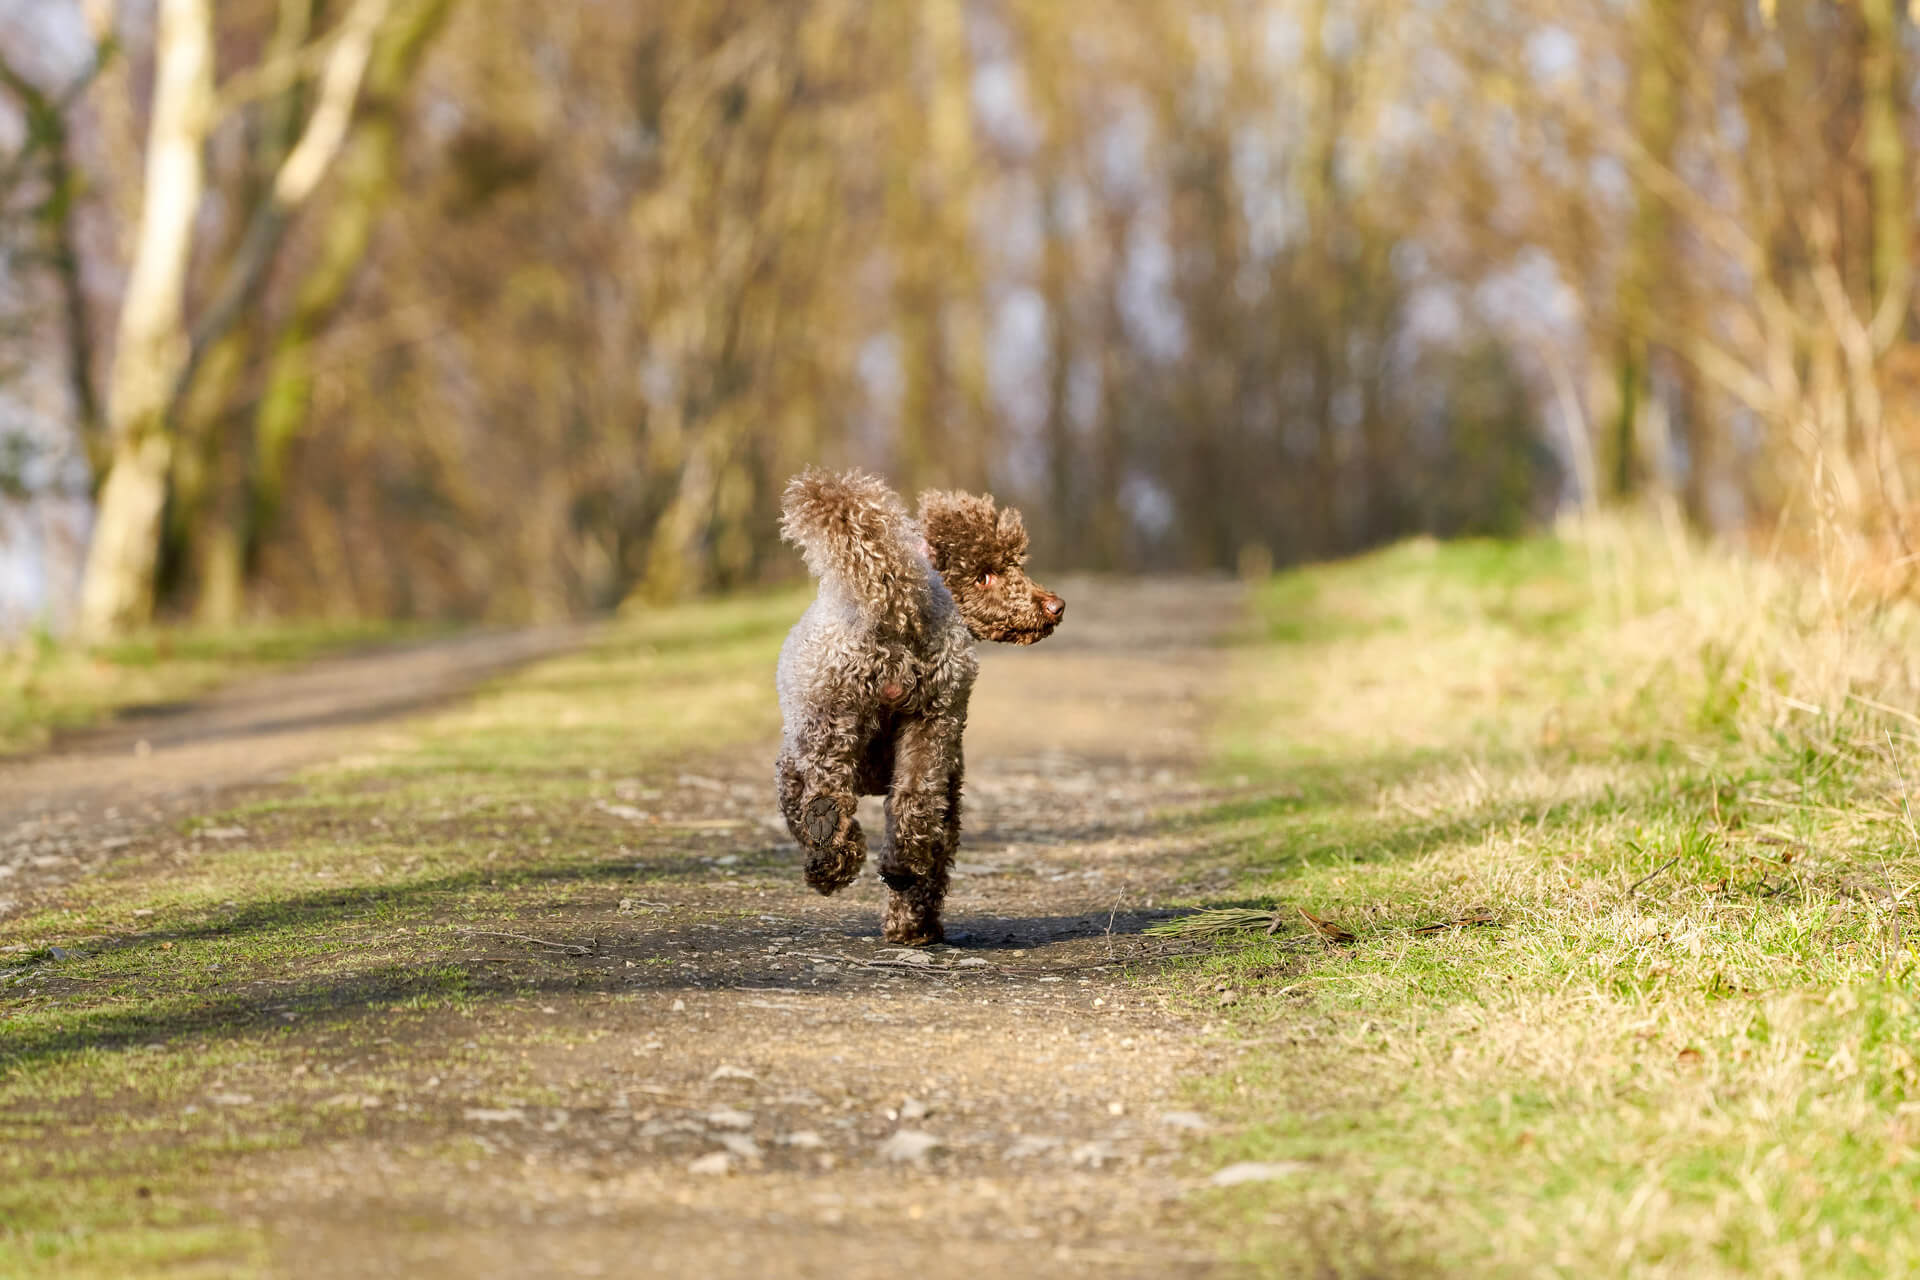 How To Find A Lost Dog: 8+ Tips To Bring Your Missing Dog Home Fast